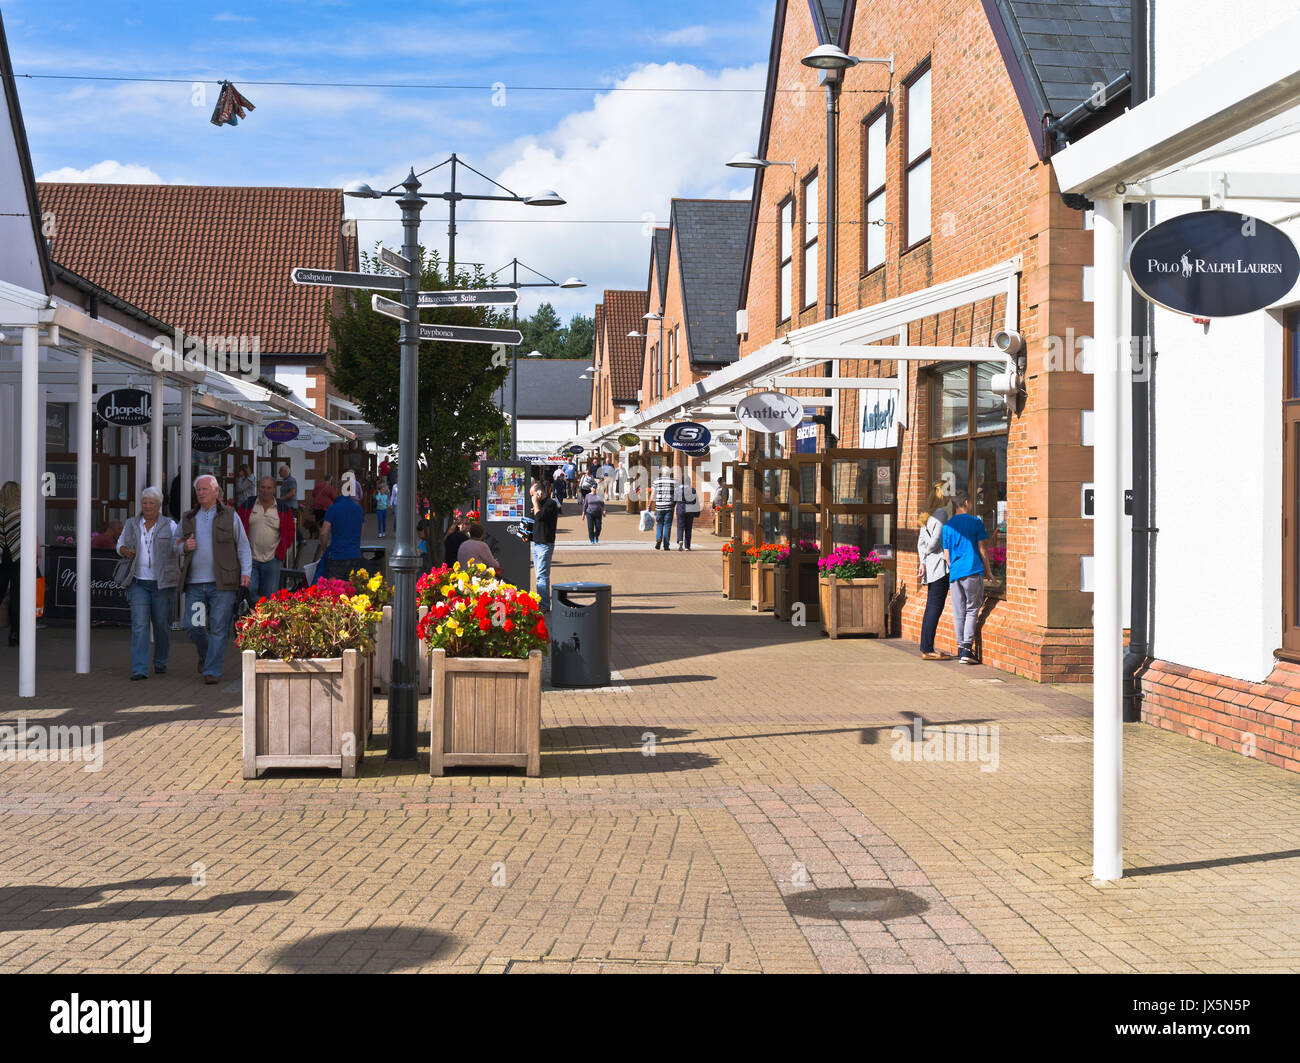 dh Gateway Outlet Village GRETNA GREEN DUMFRIES Shoppers mall shops outlets retail shopping scotland - Stock Image